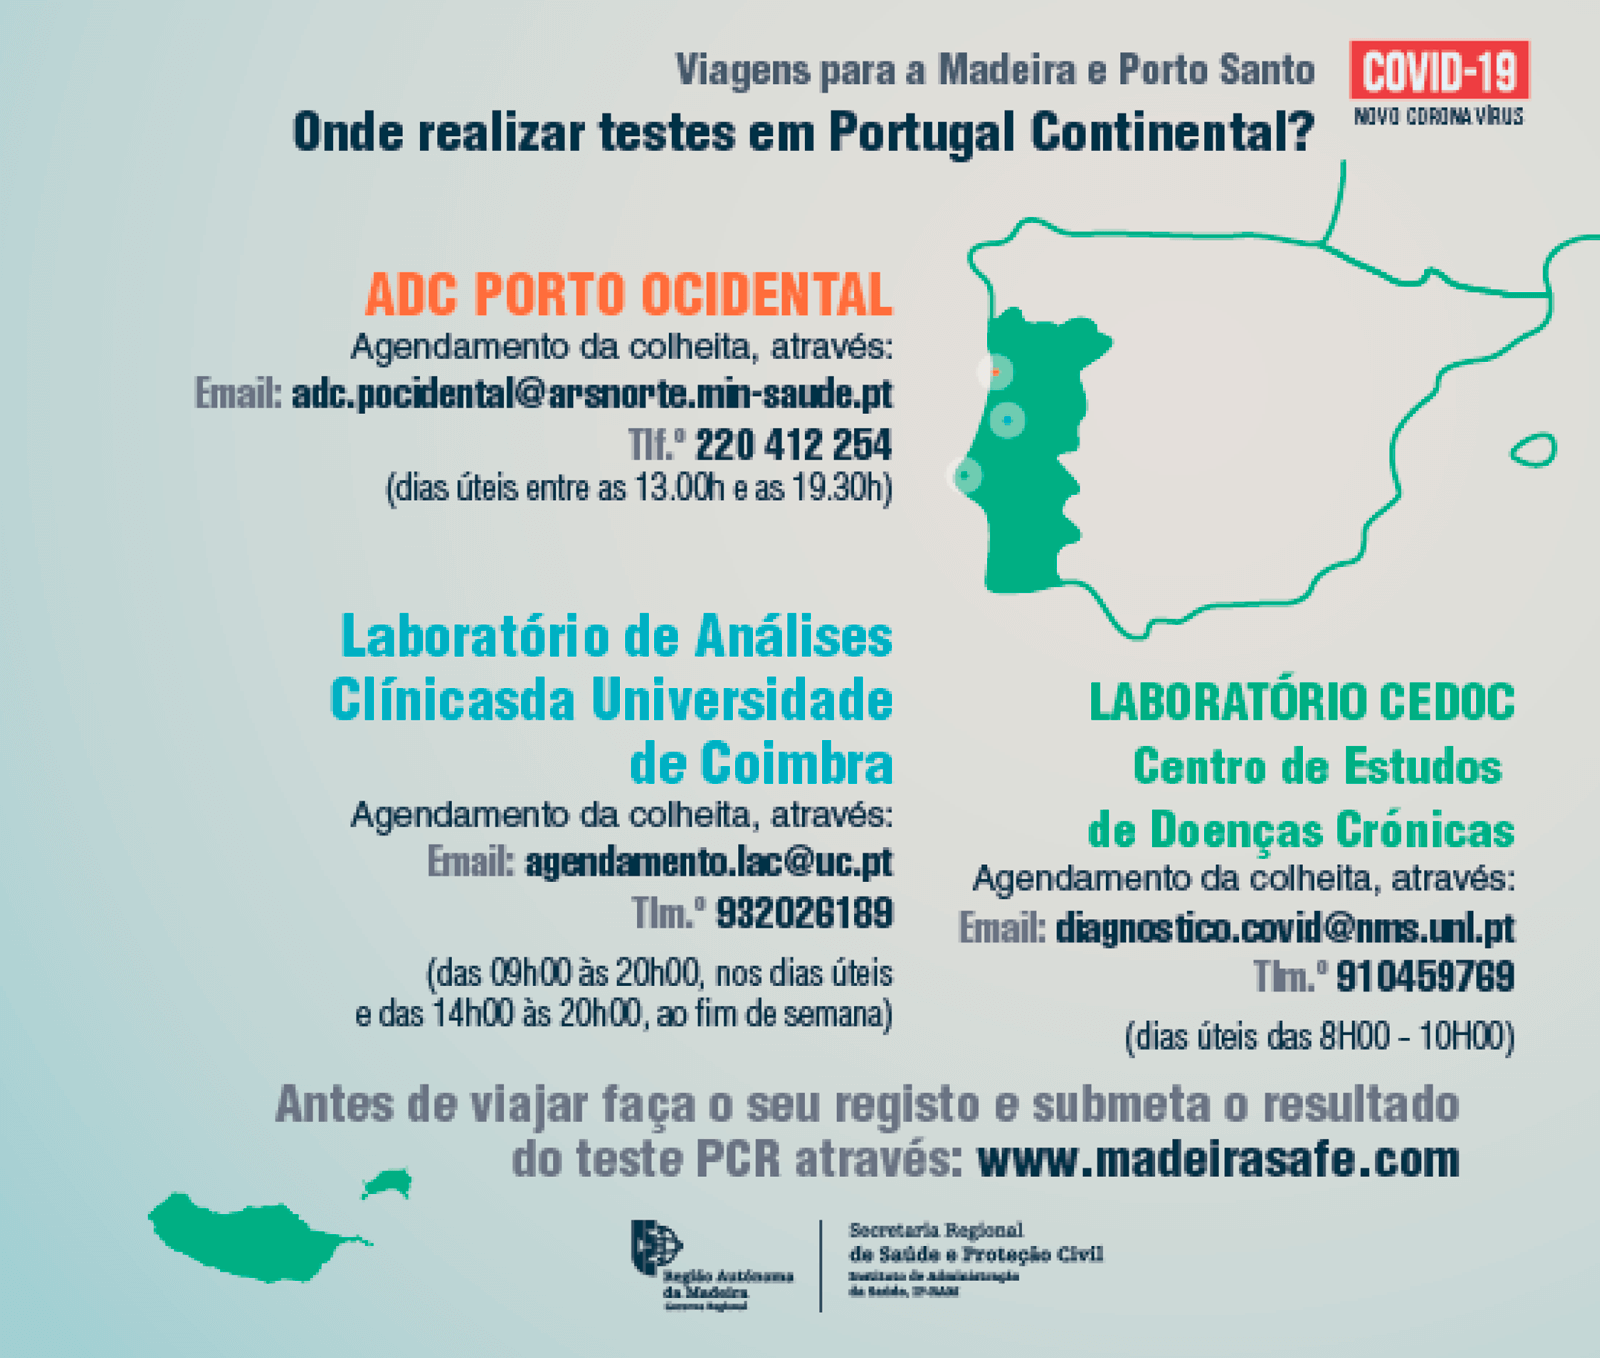 Places Protocoled by the Regional Government of Madeira